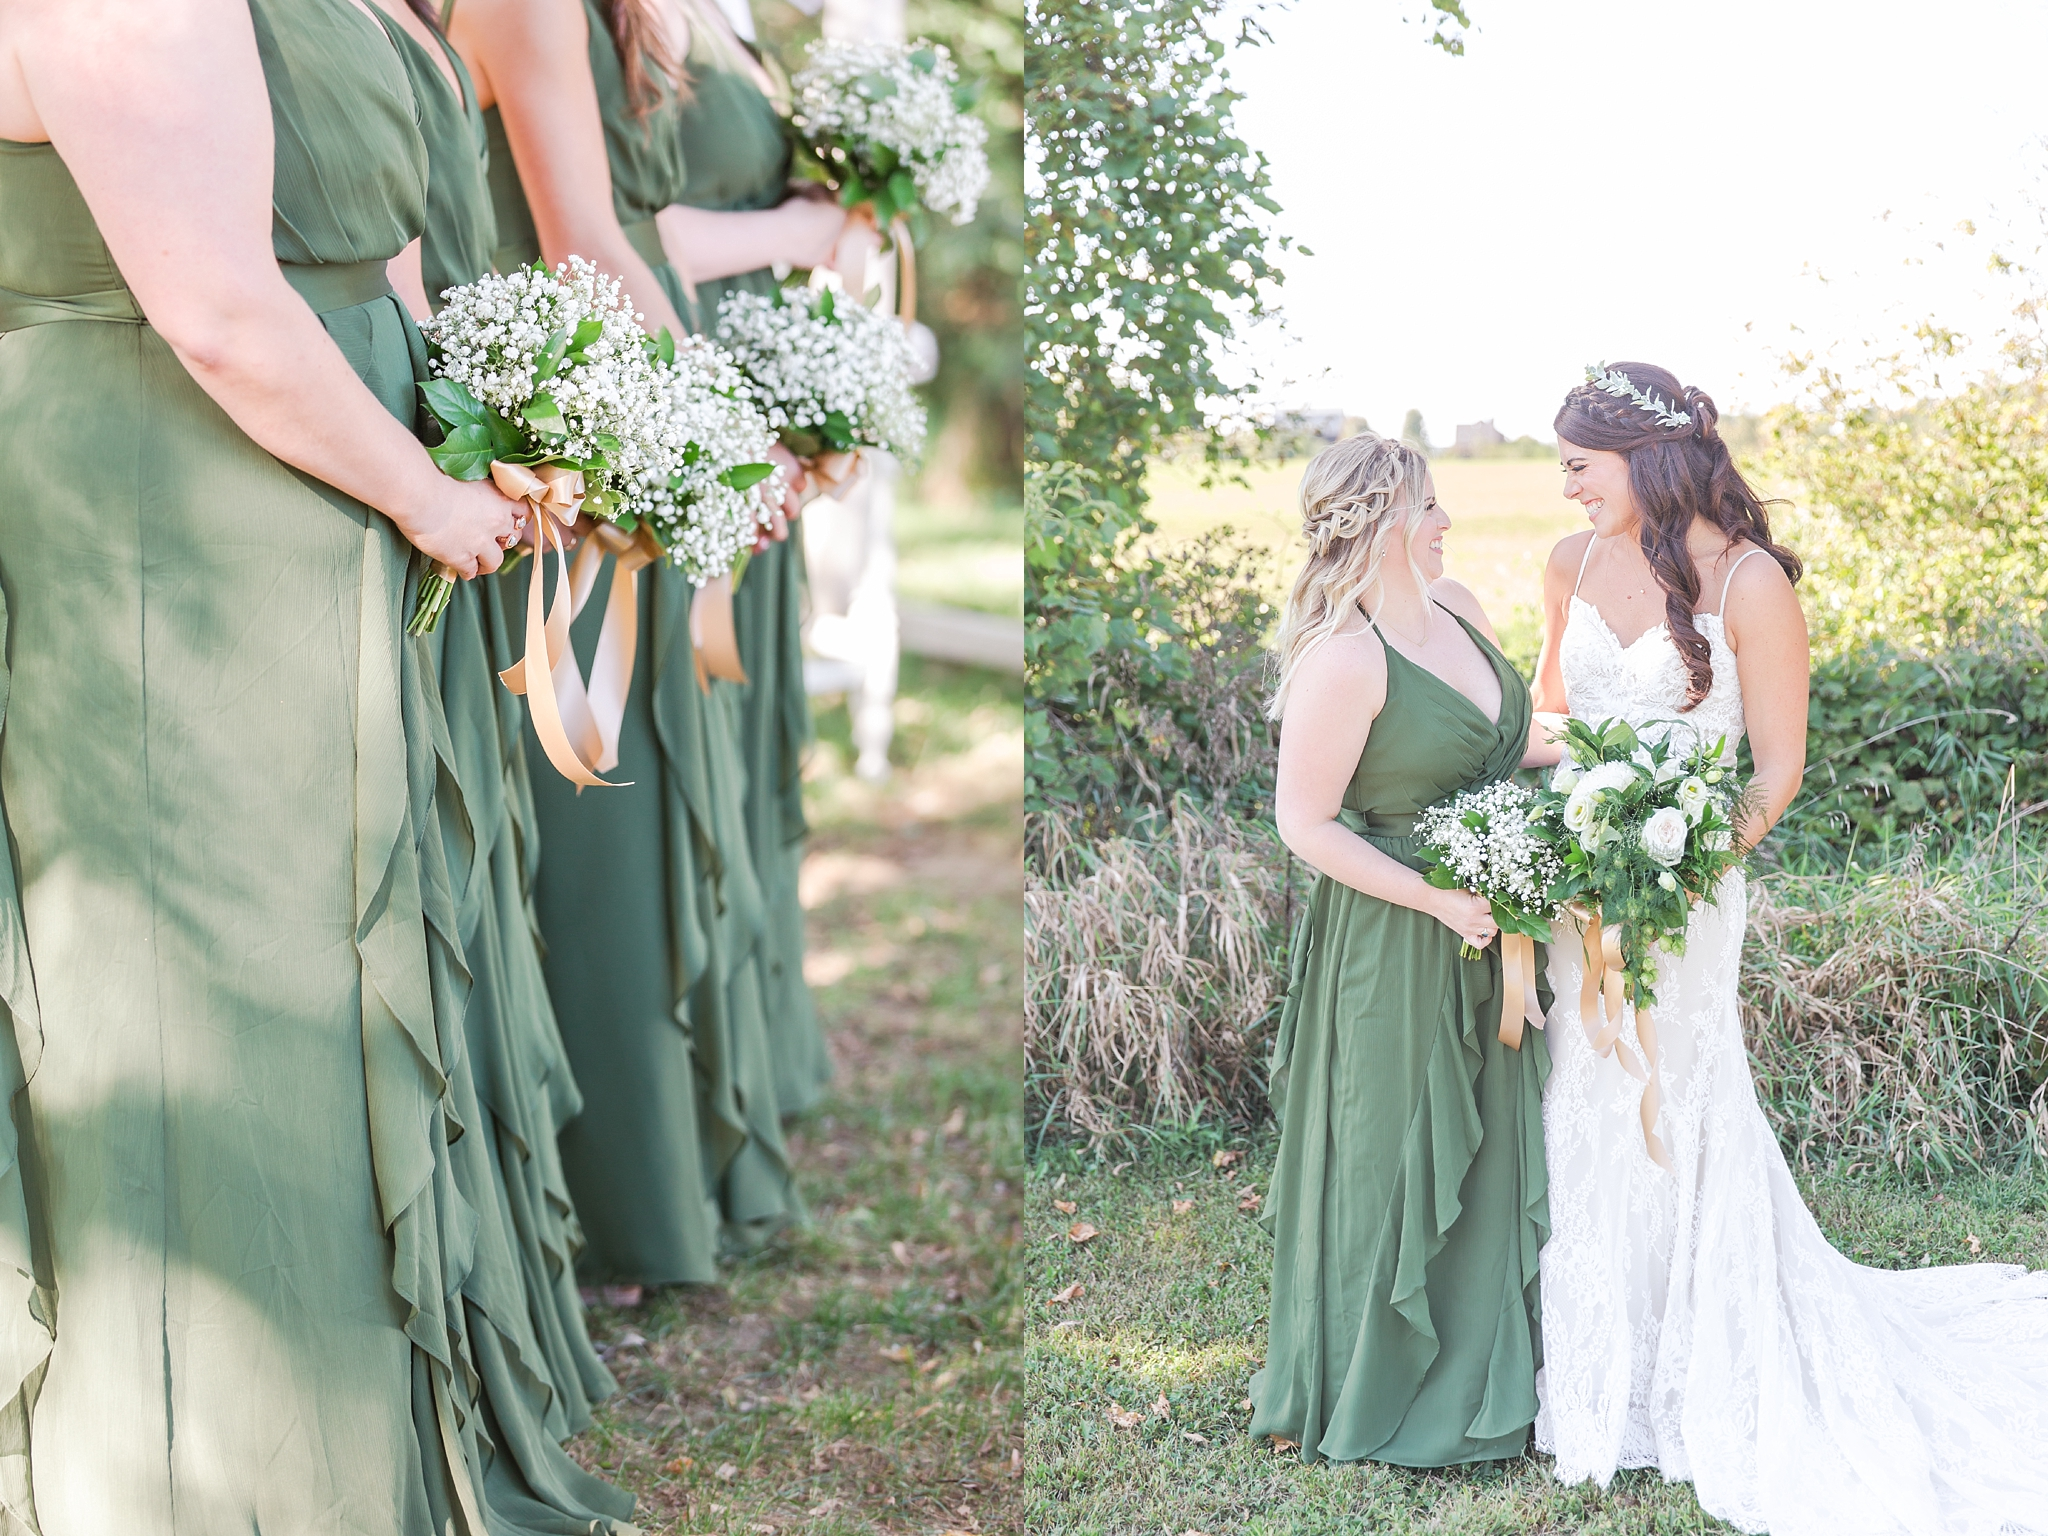 natural-rustic-wedding-photos-at-frutig-farms-the-valley-in-ann-arbor-michigan-by-courtney-carolyn-photography_0025.jpg